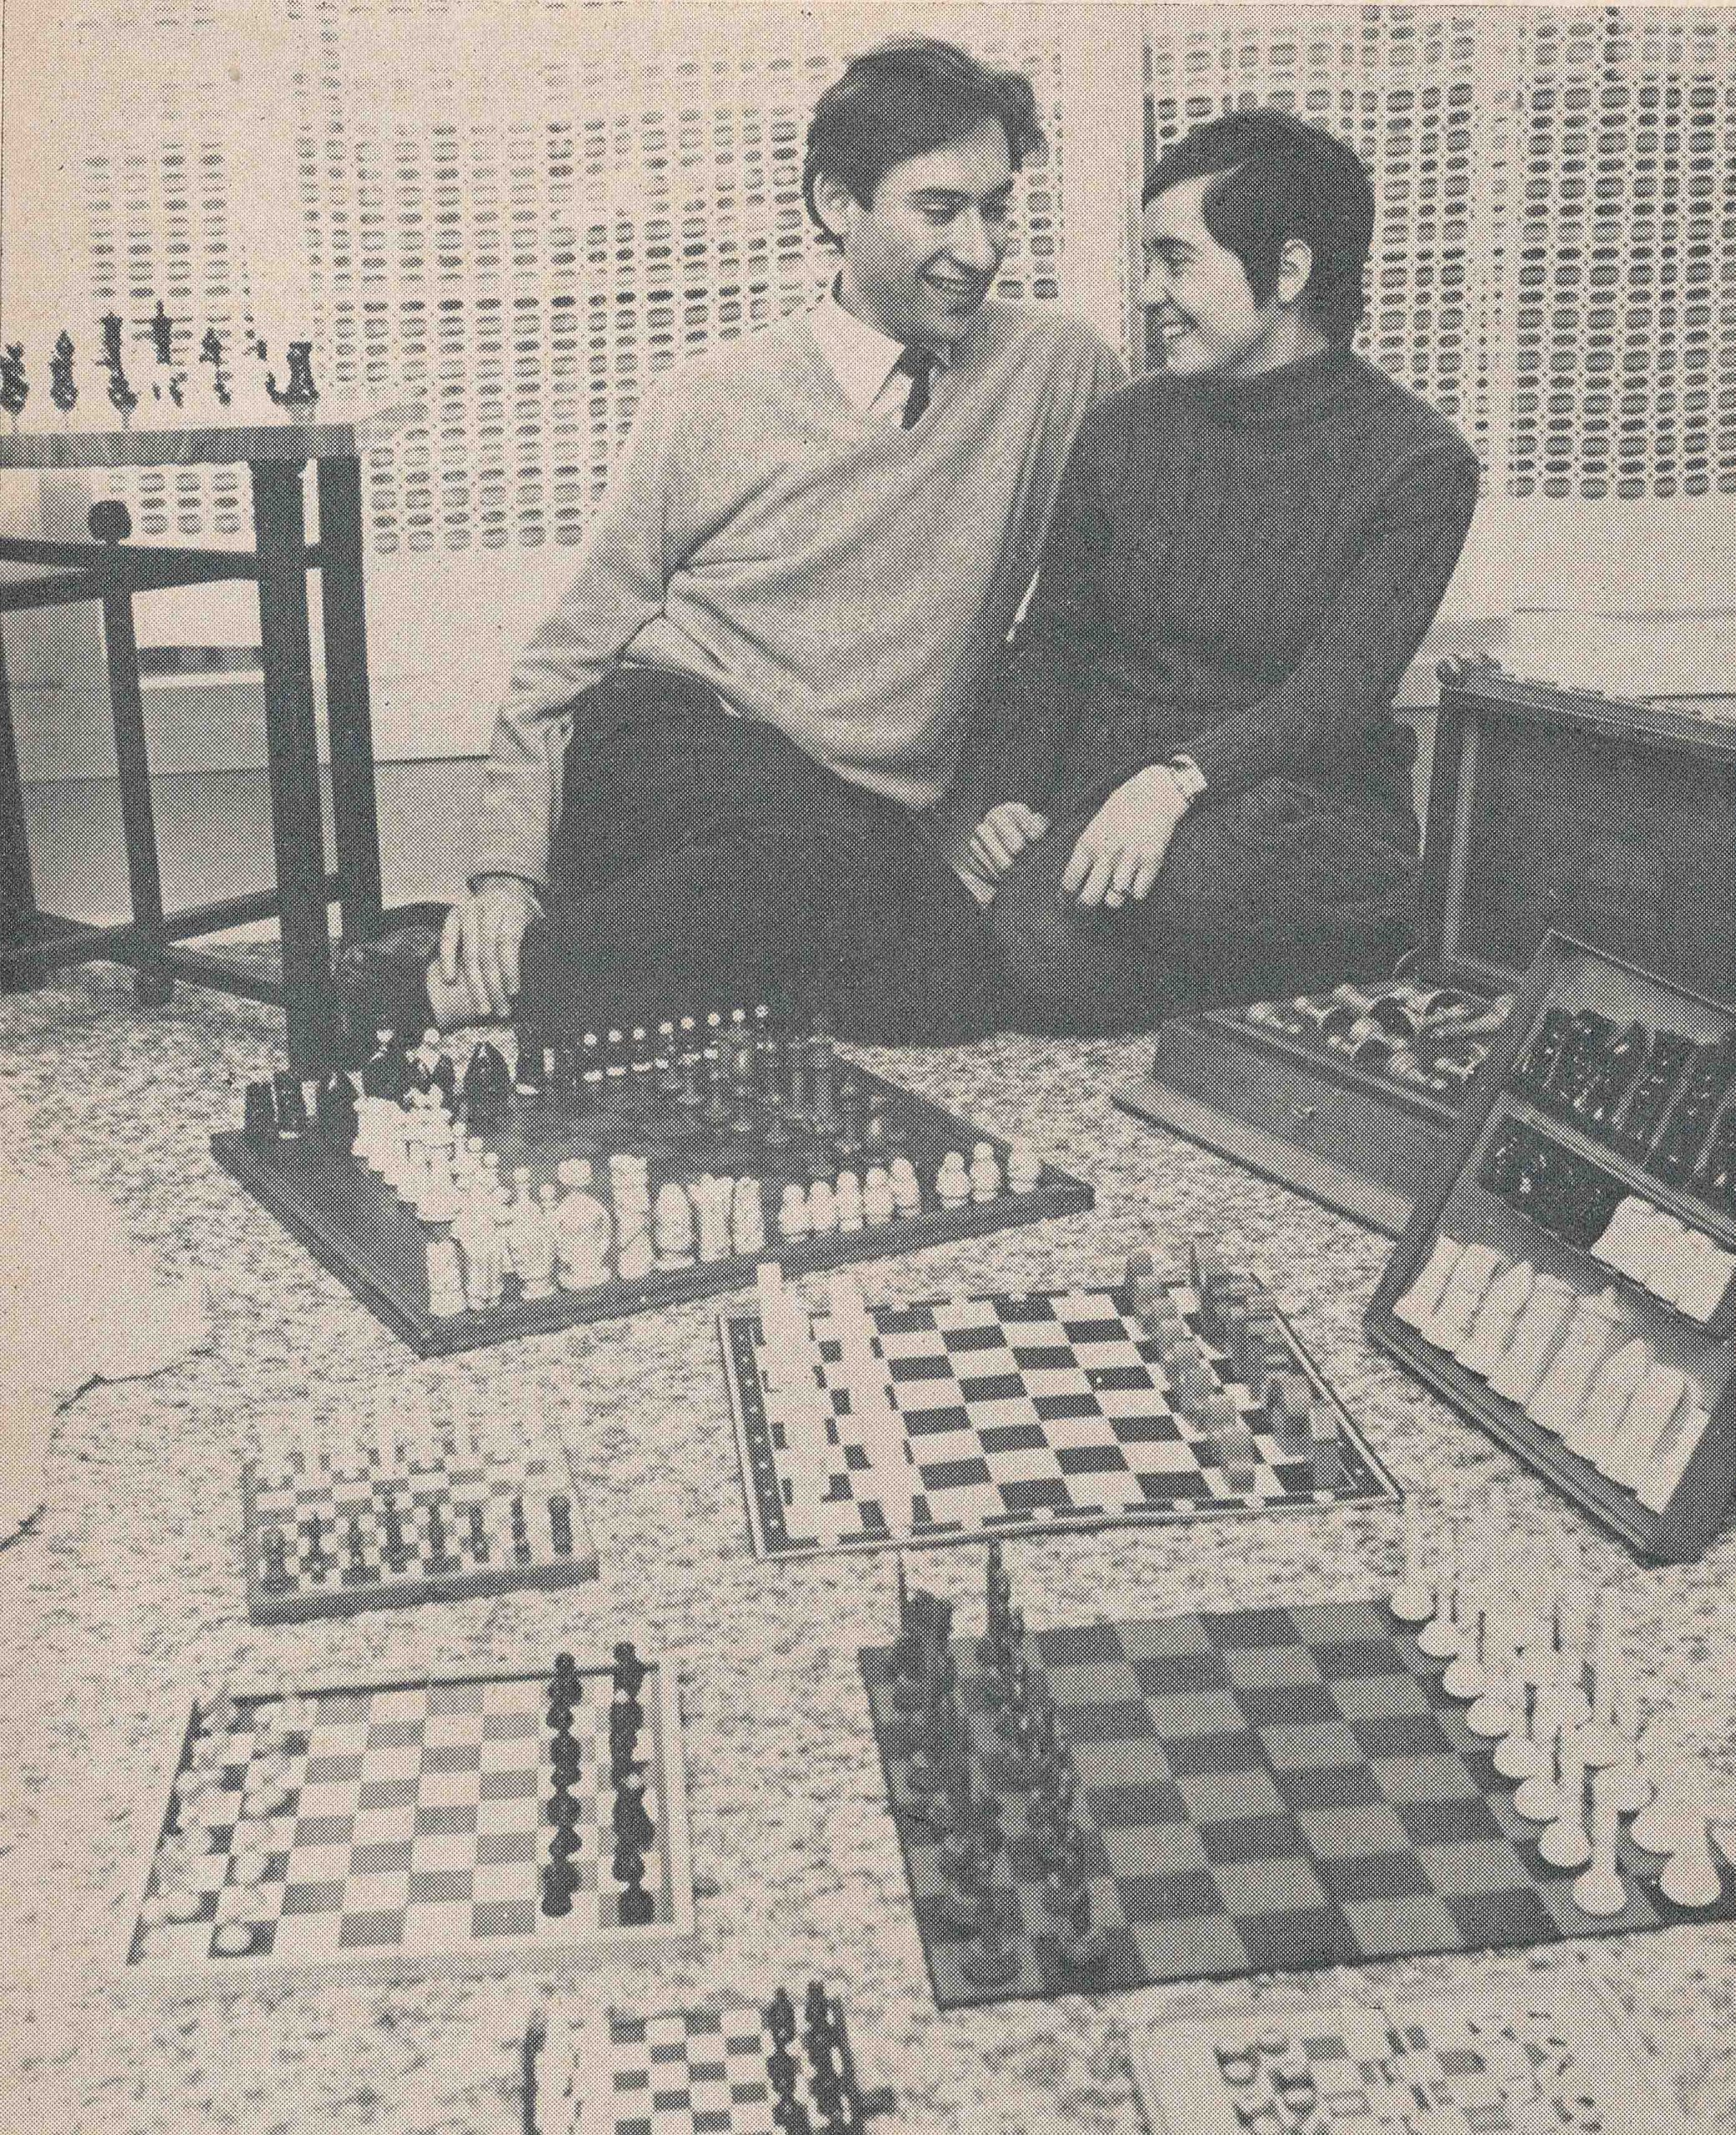 Bill and Jana Hartston are shown with some of their many chess sets. CHESS, August 1973, page 323